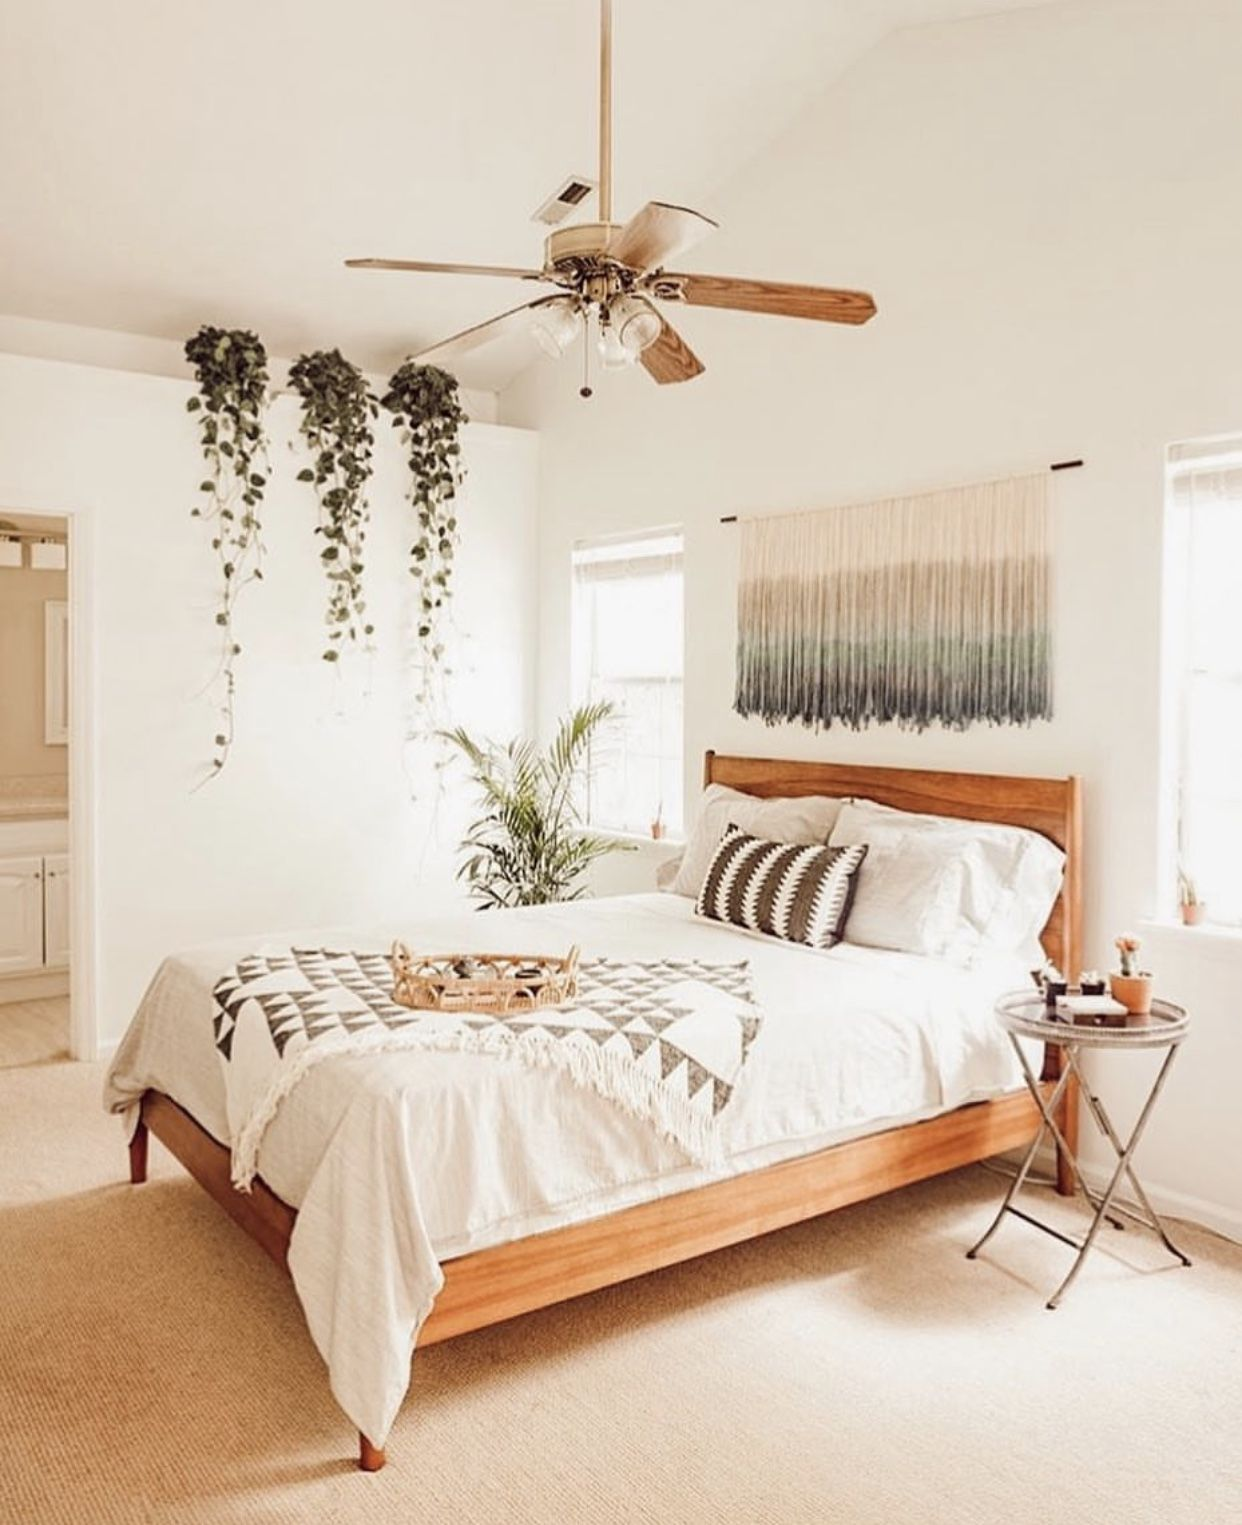 pin by melissa atkins on townhouse guest bedroom pinterest rh pinterest com Townhouse Master Bedroom Townhouse Russet Bedrooms